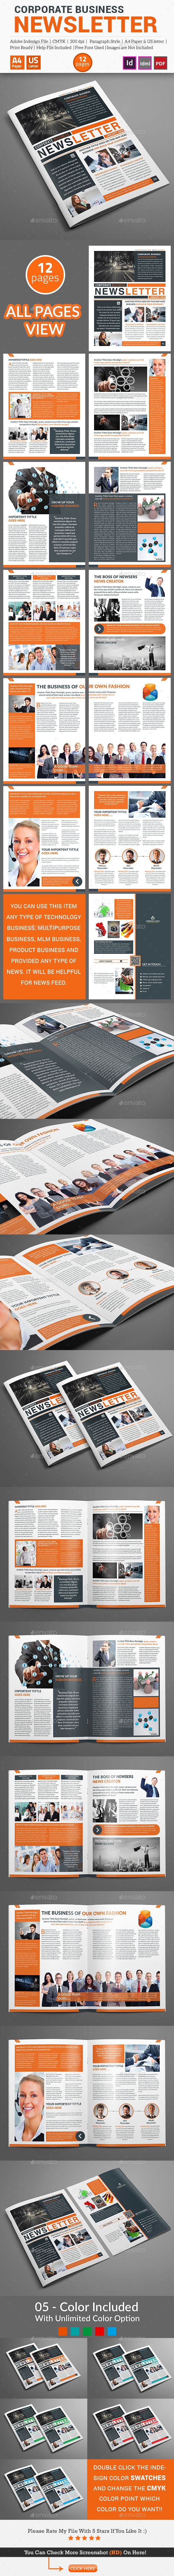 Newsletter For Corporate Business Pages Pinterest Corporate - Pages newsletter templates